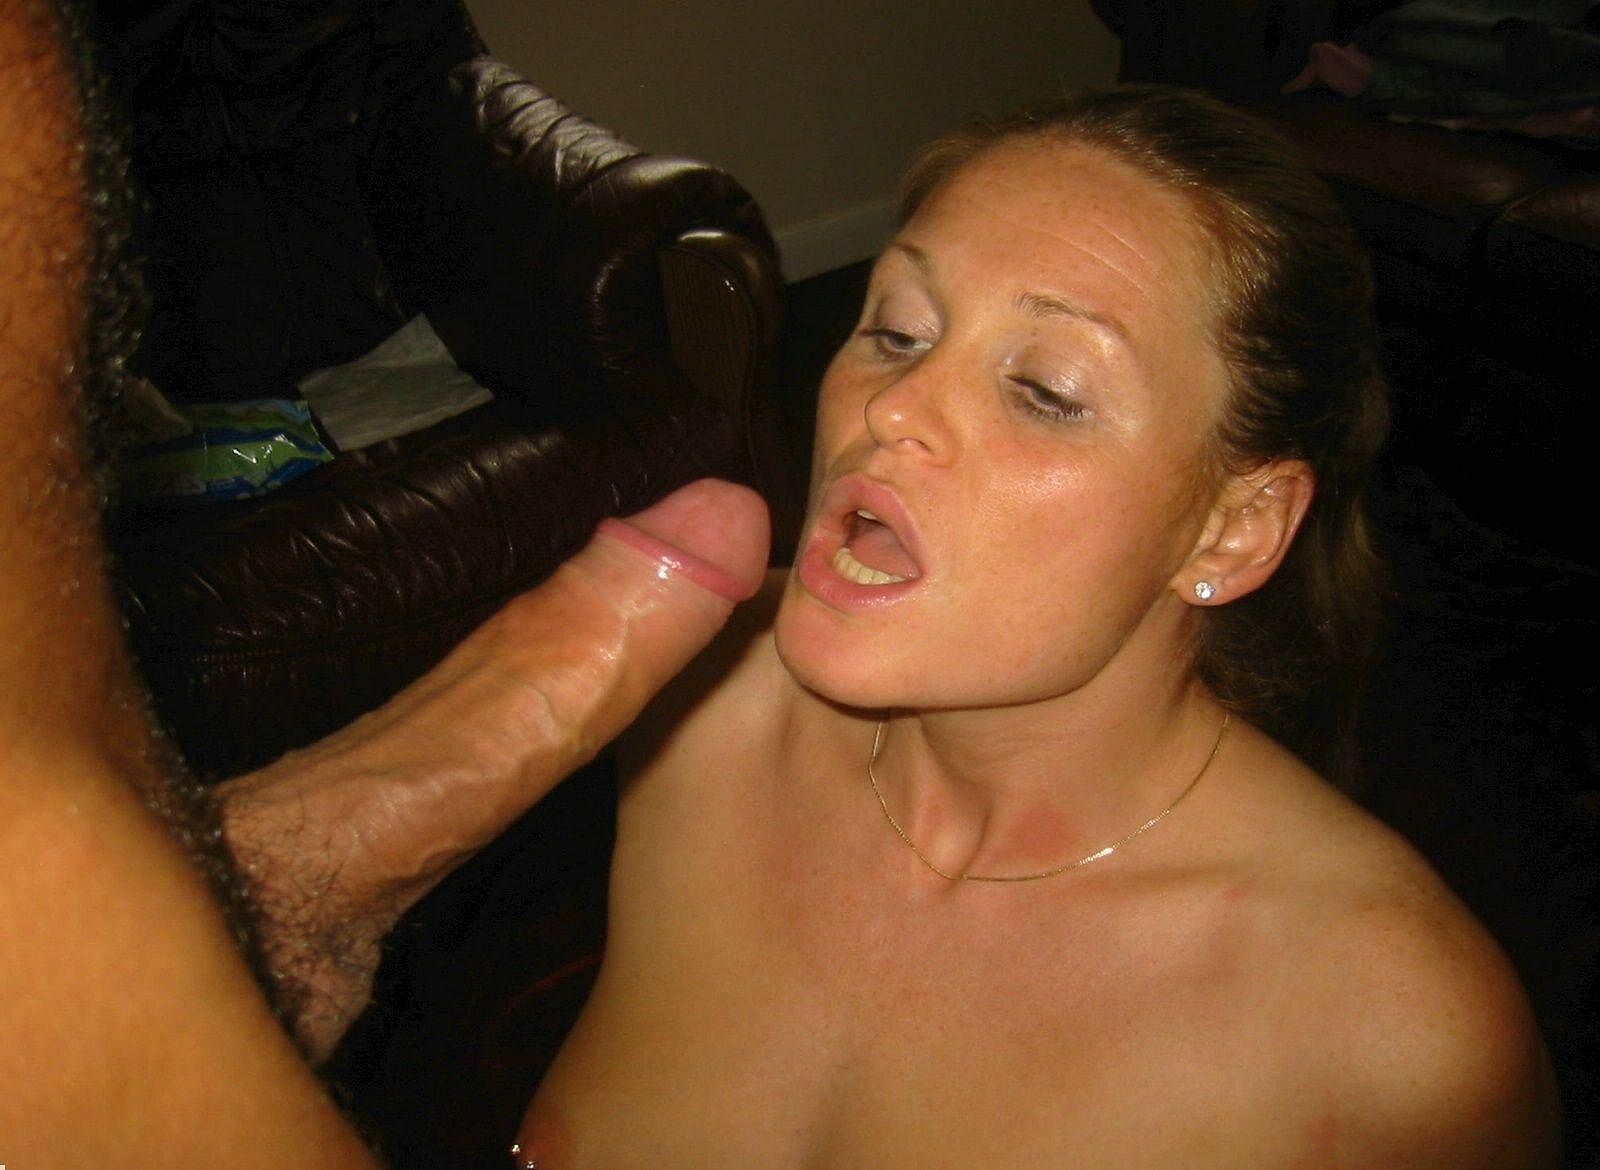 Husband and wife jerking off together